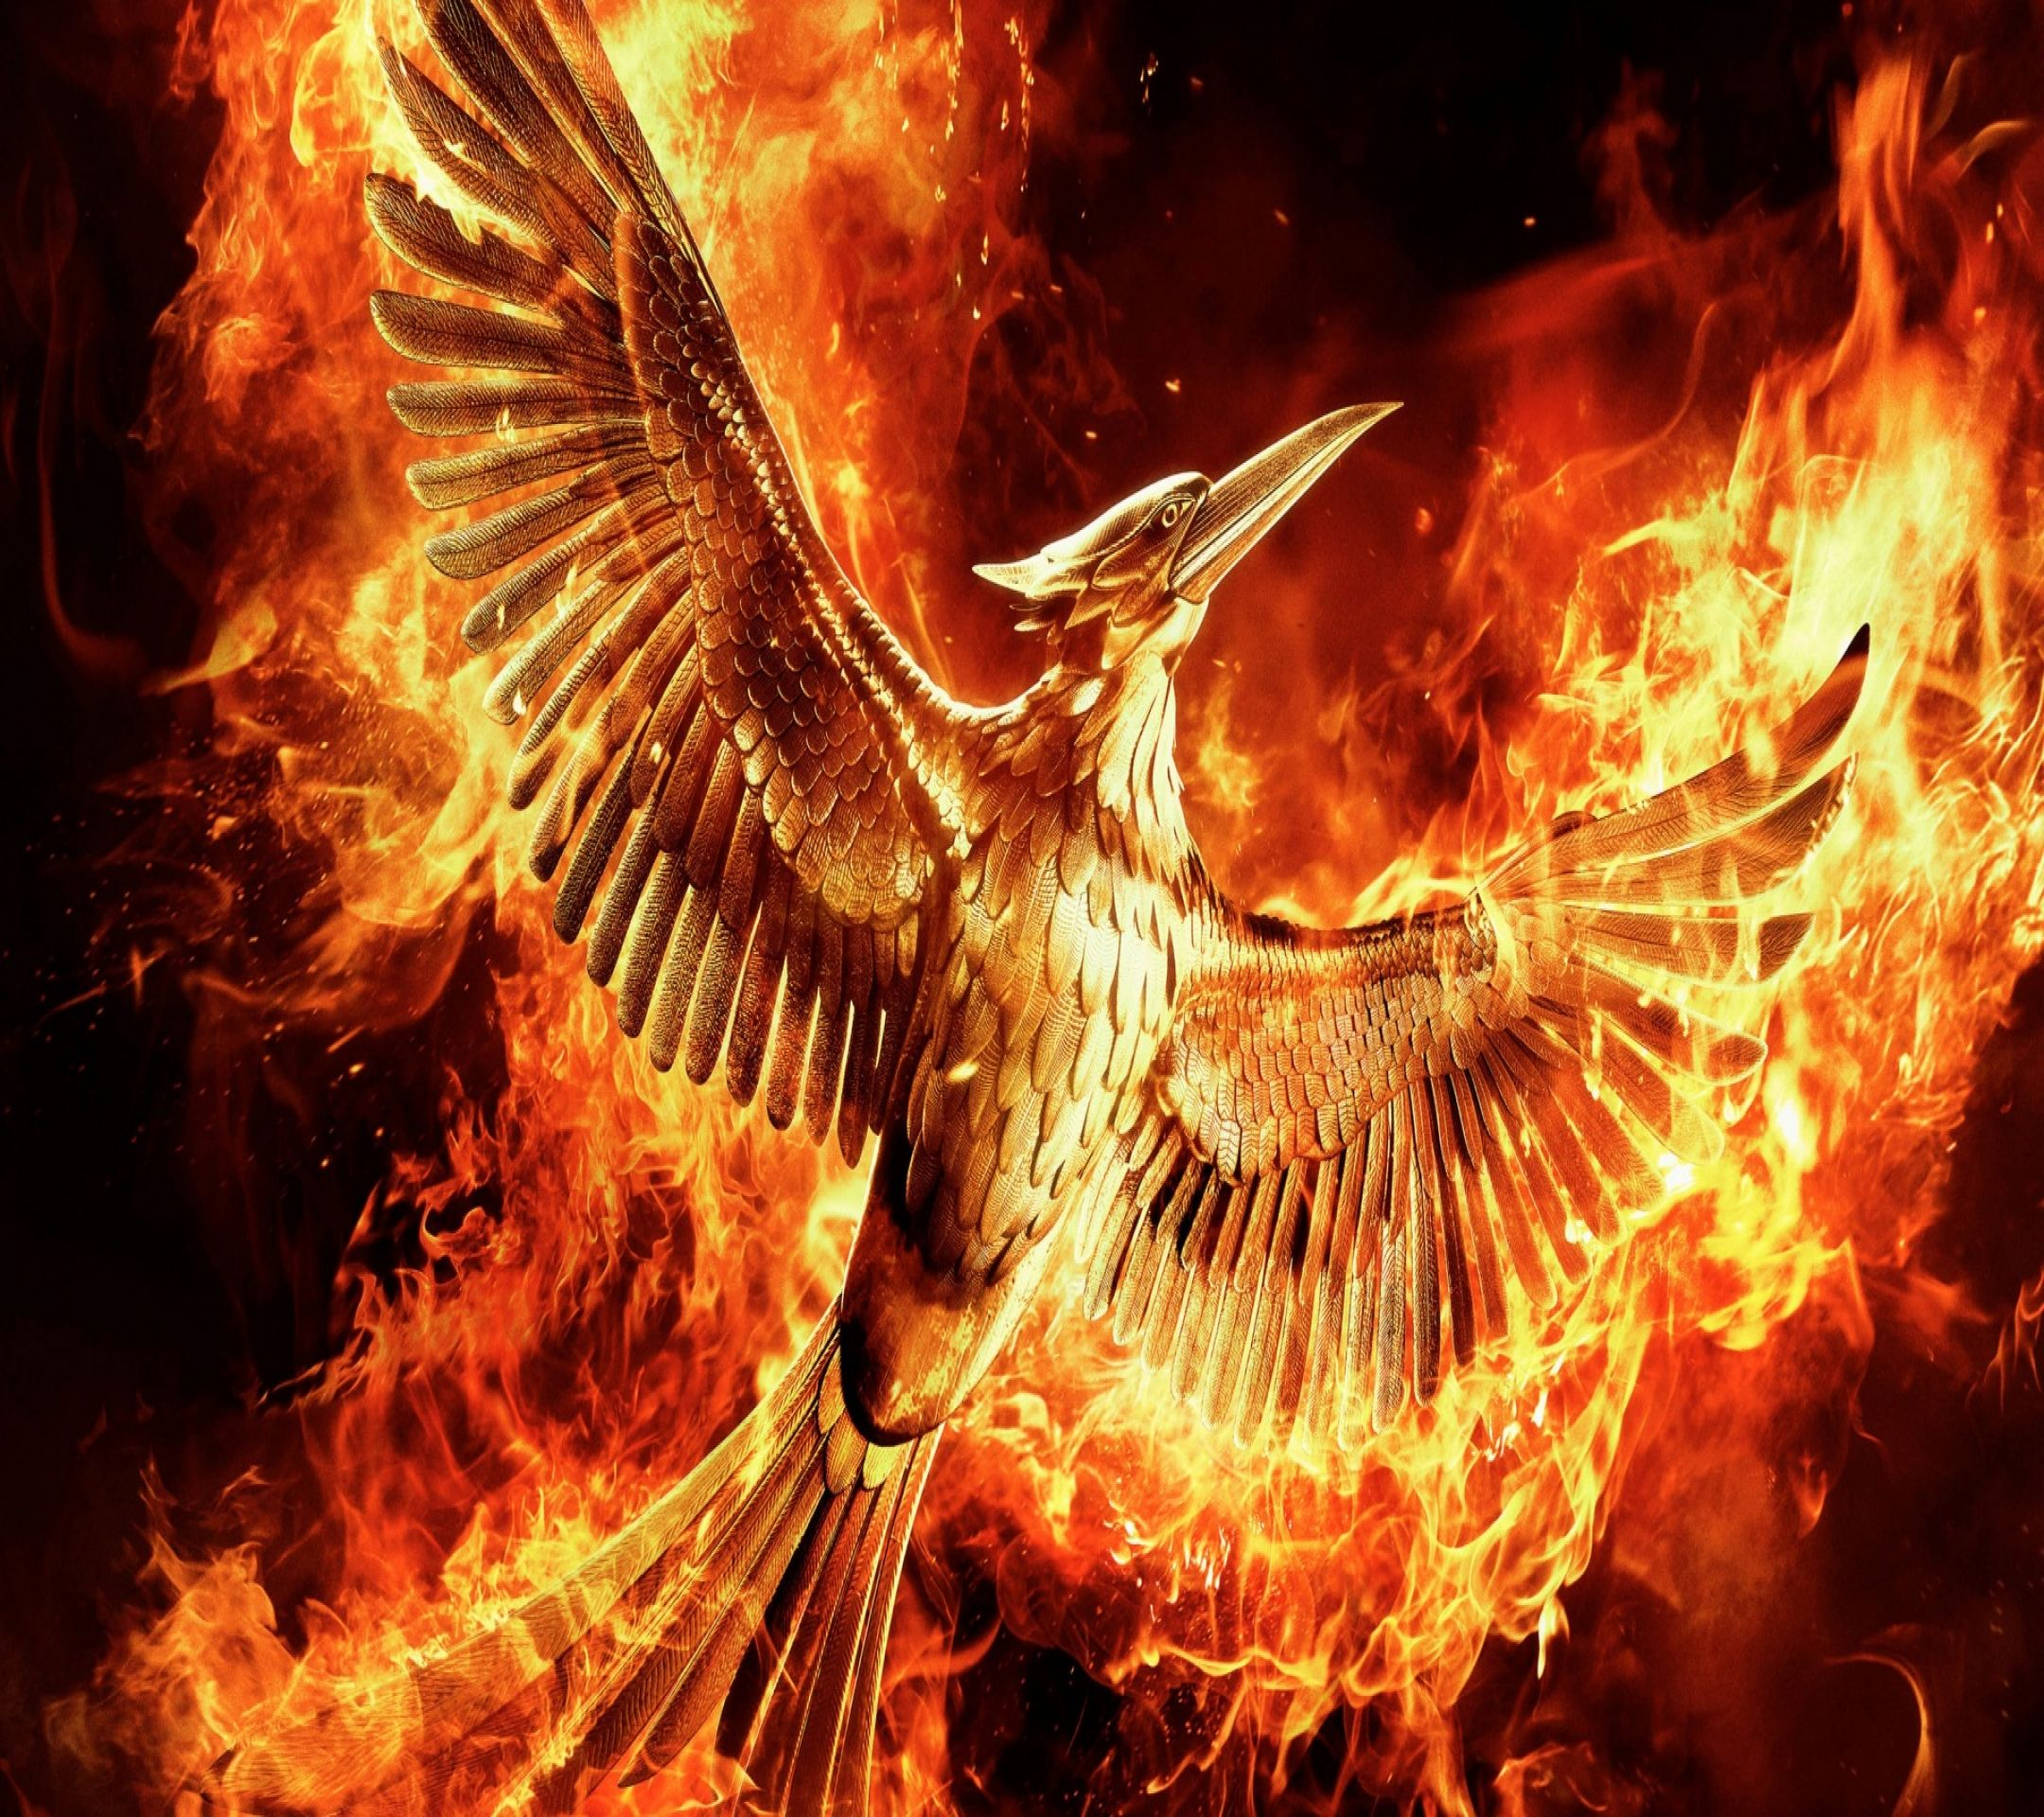 Fire bird. Tap to see 12 HD wallpapers of The Hunger Games